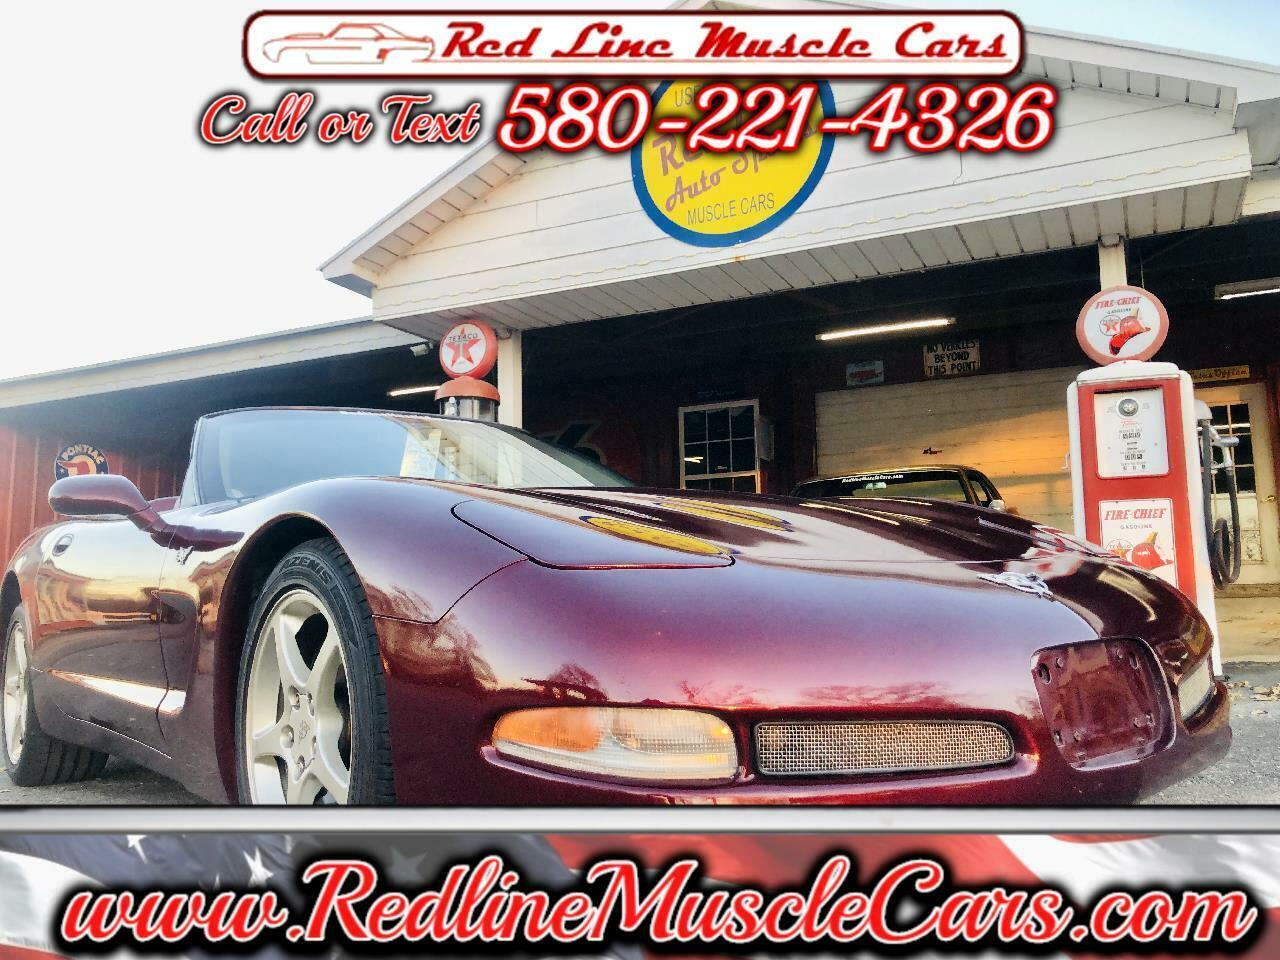 2003 Burgundy Chevrolet Corvette Convertible  | C5 Corvette Photo 1